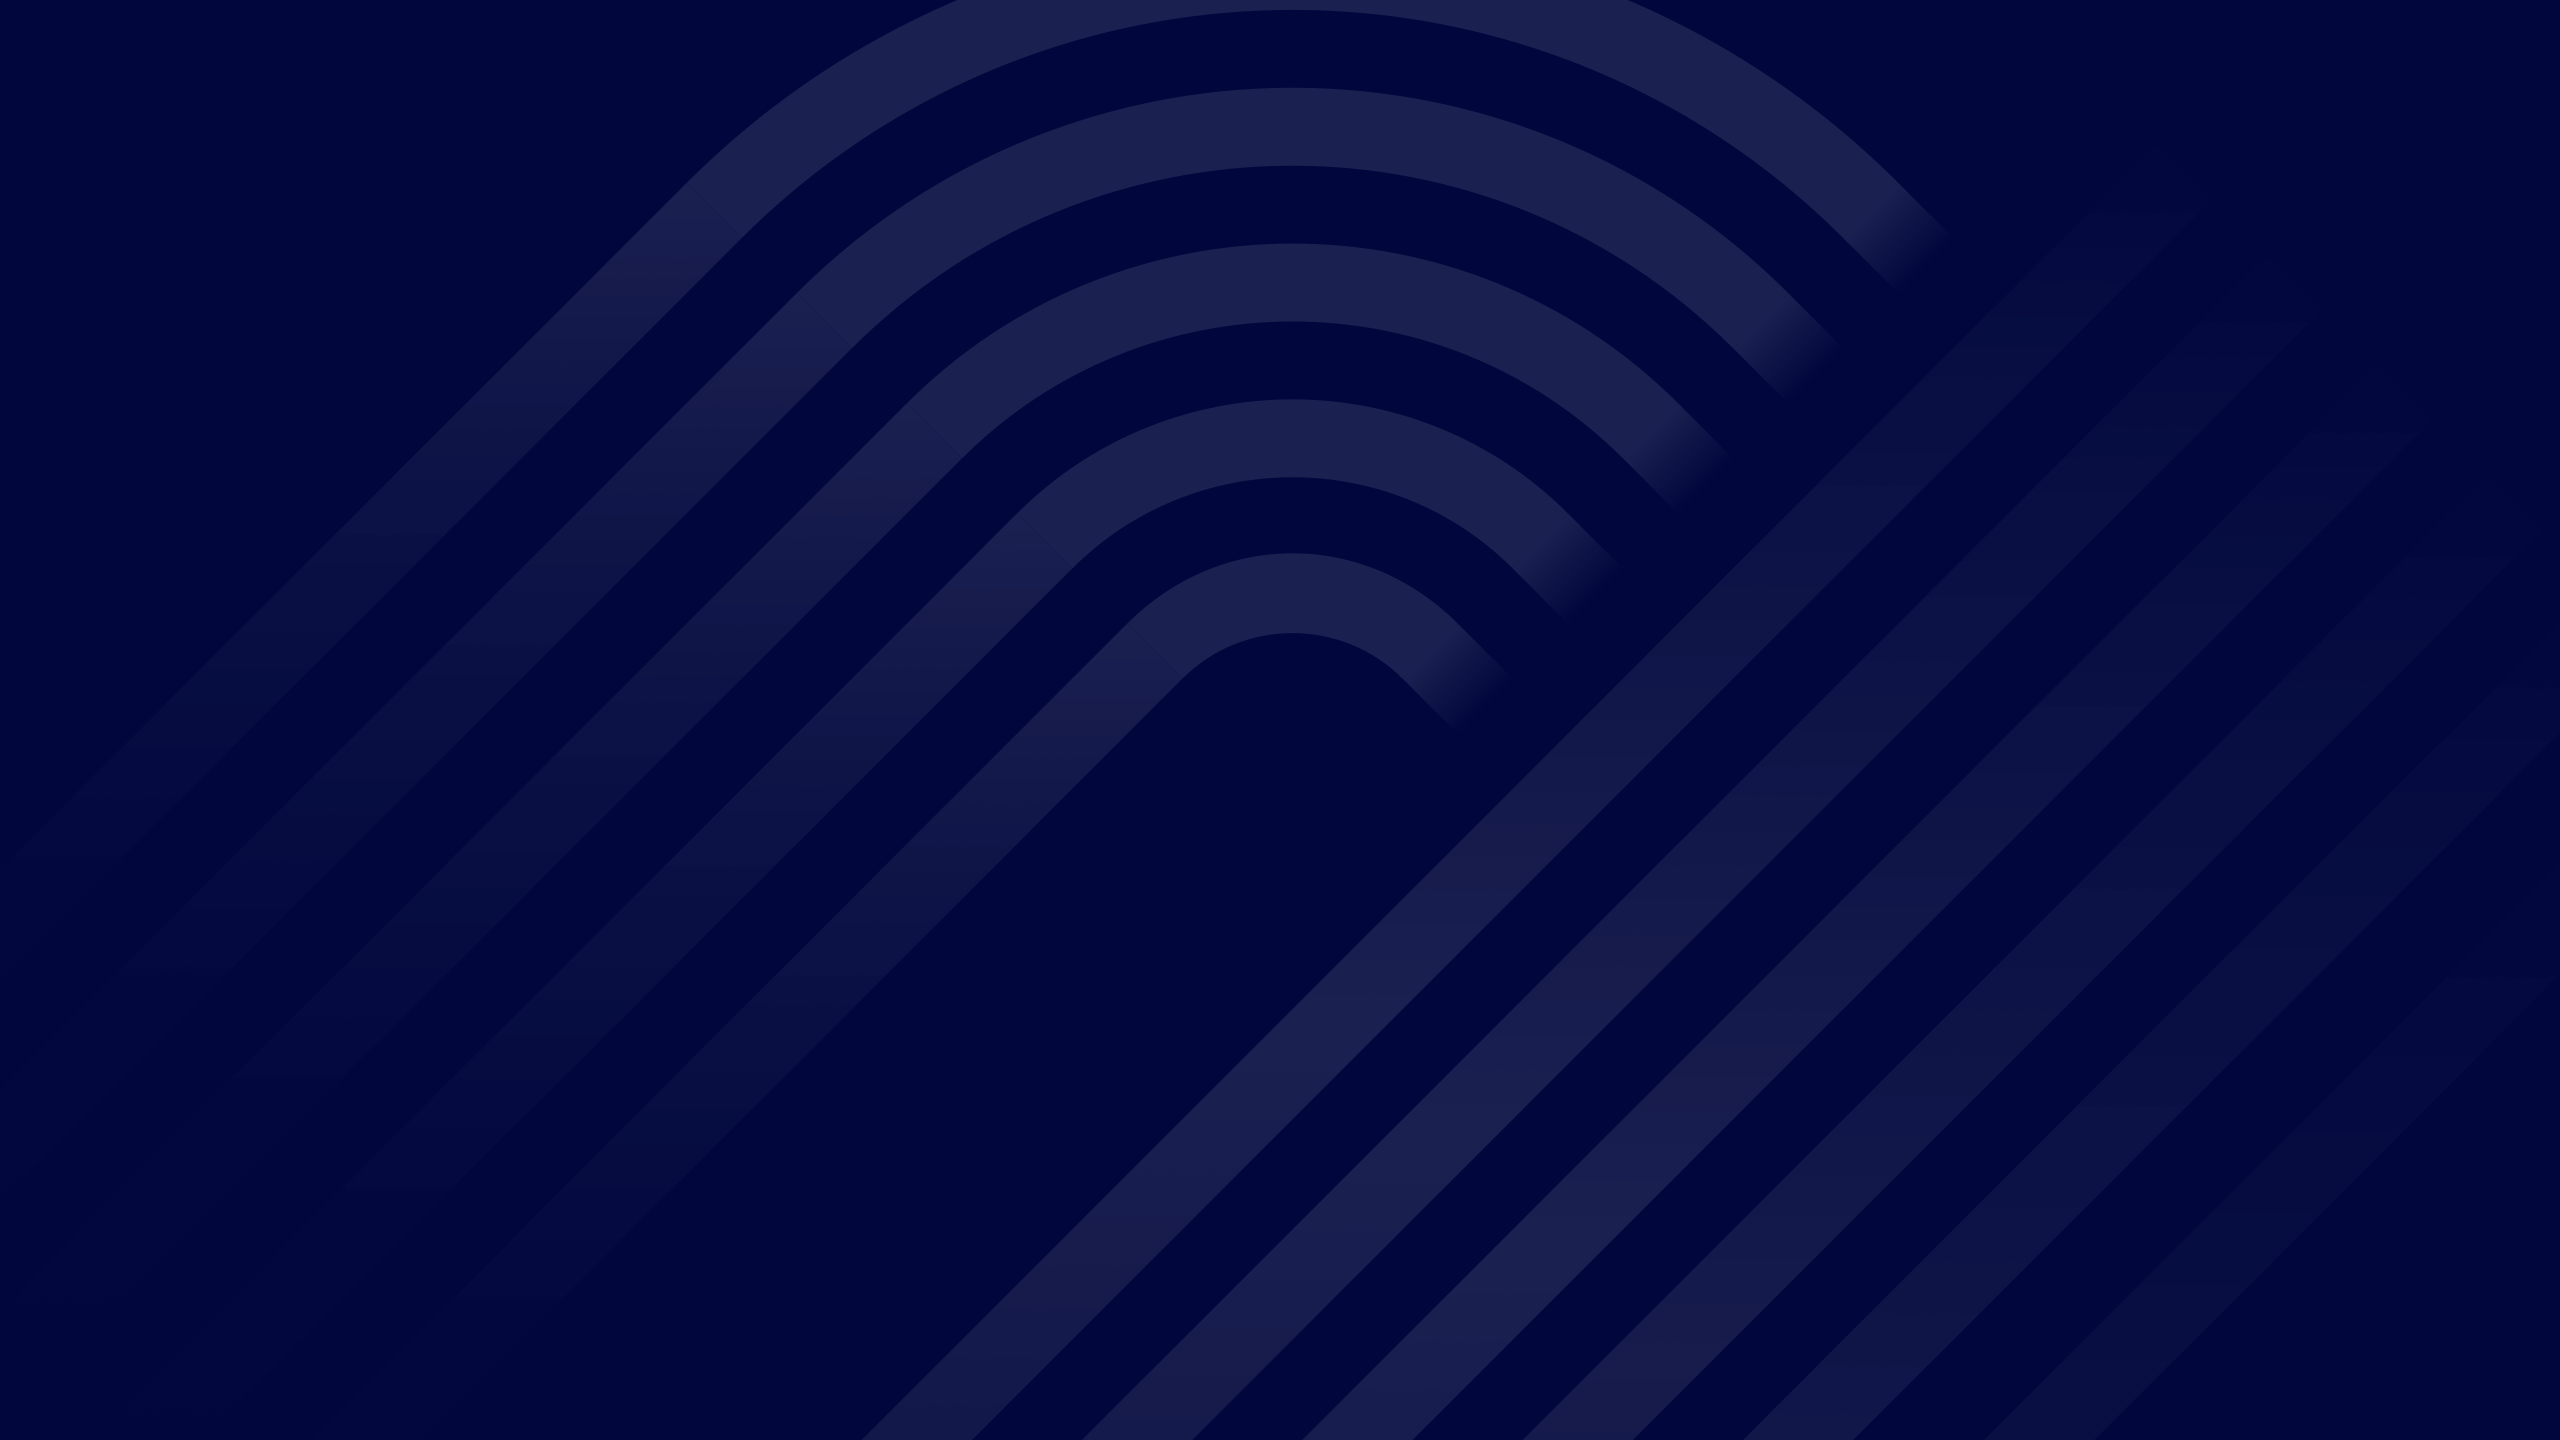 Simple Swanleap branded navy blue background image